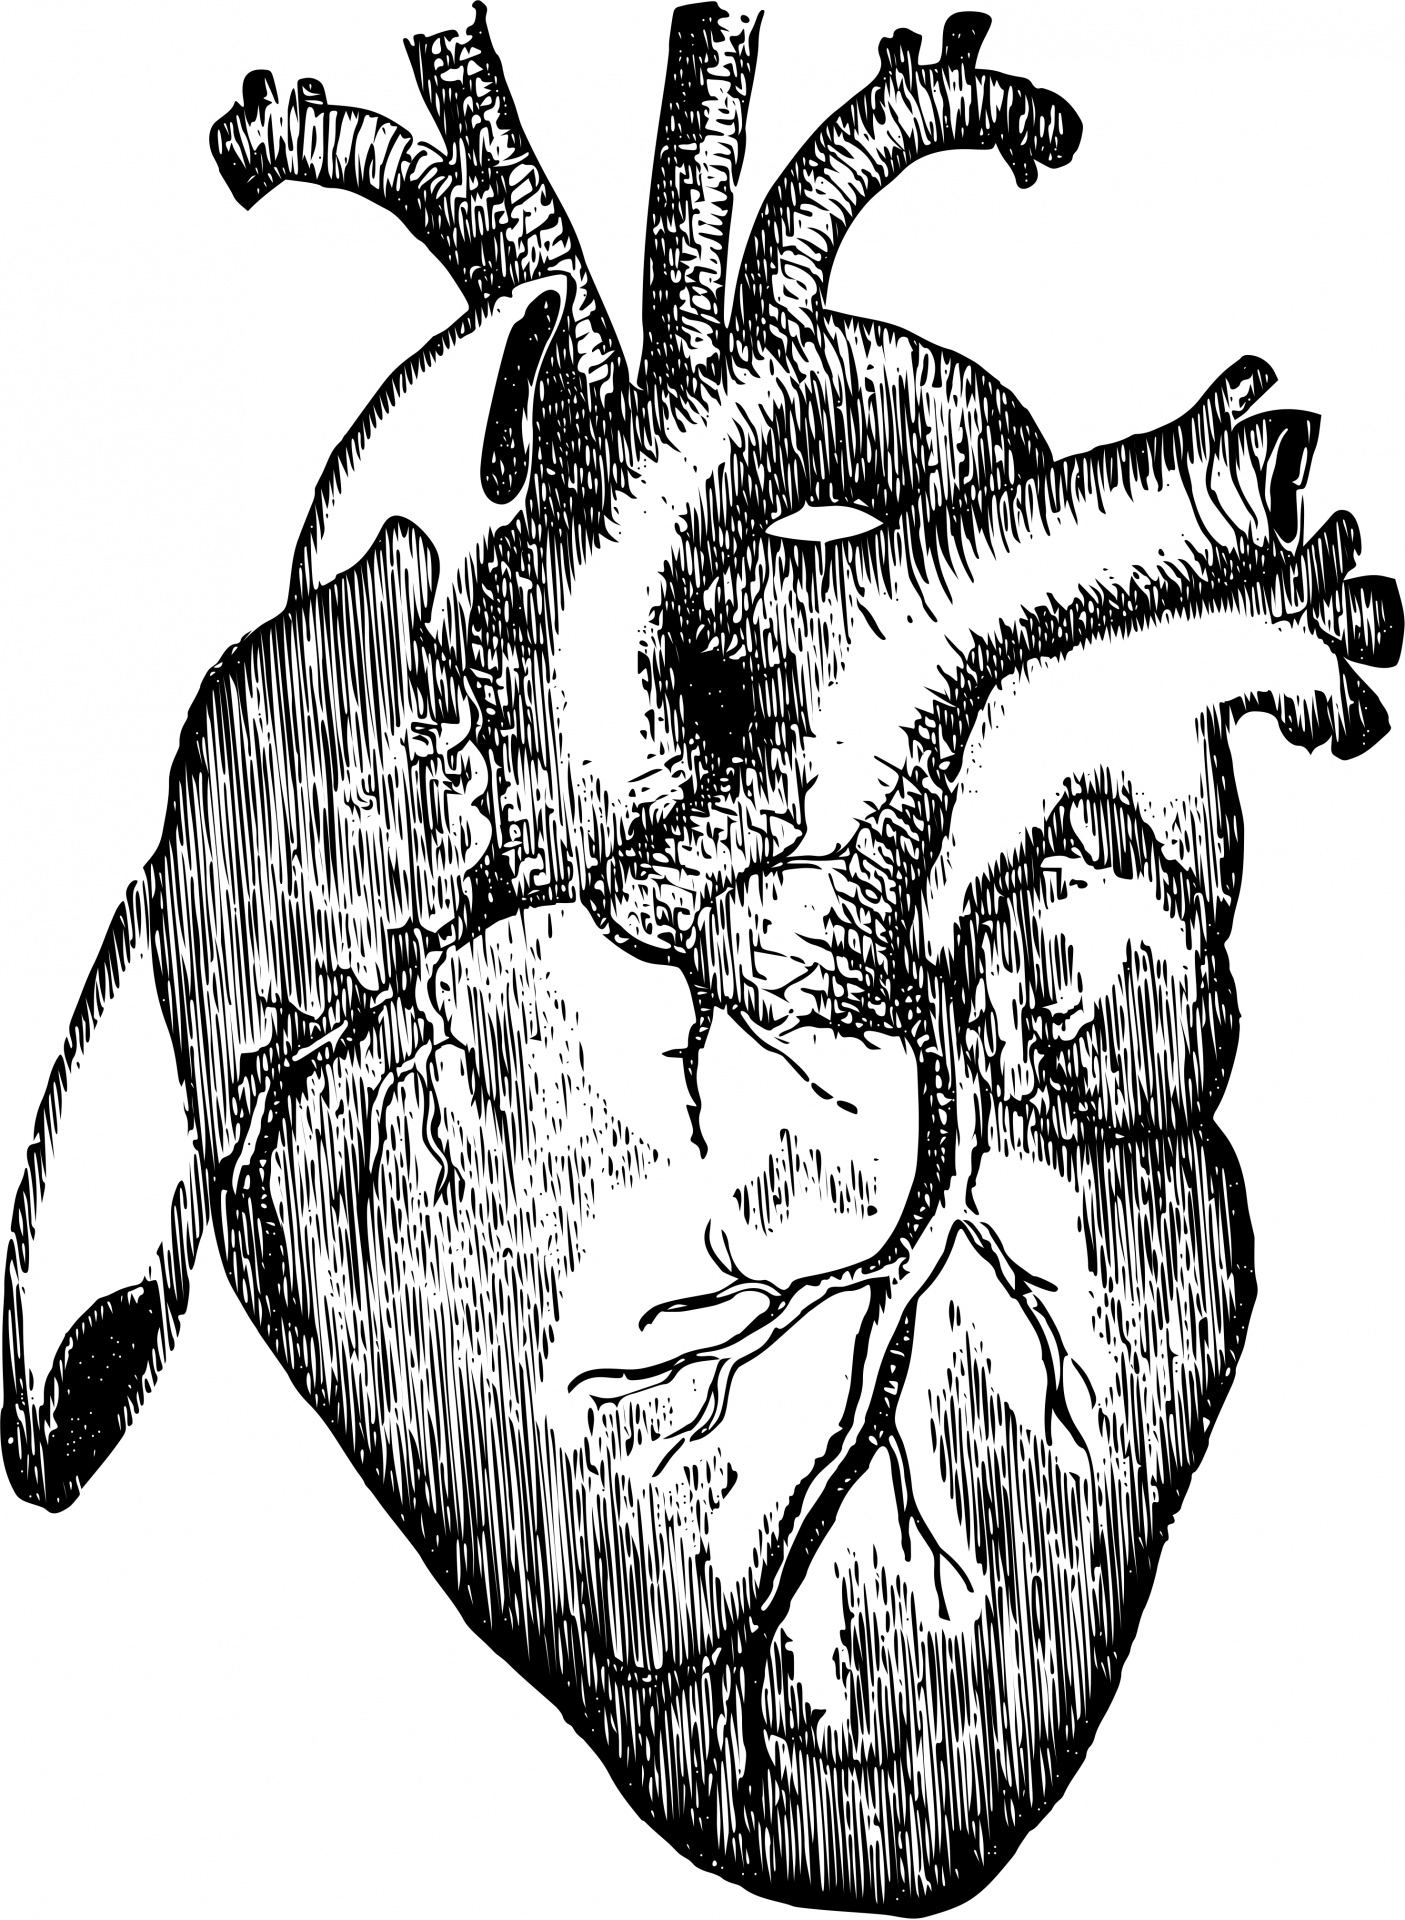 Anatomical Heart Drawing At Getdrawings Free For Personal Use